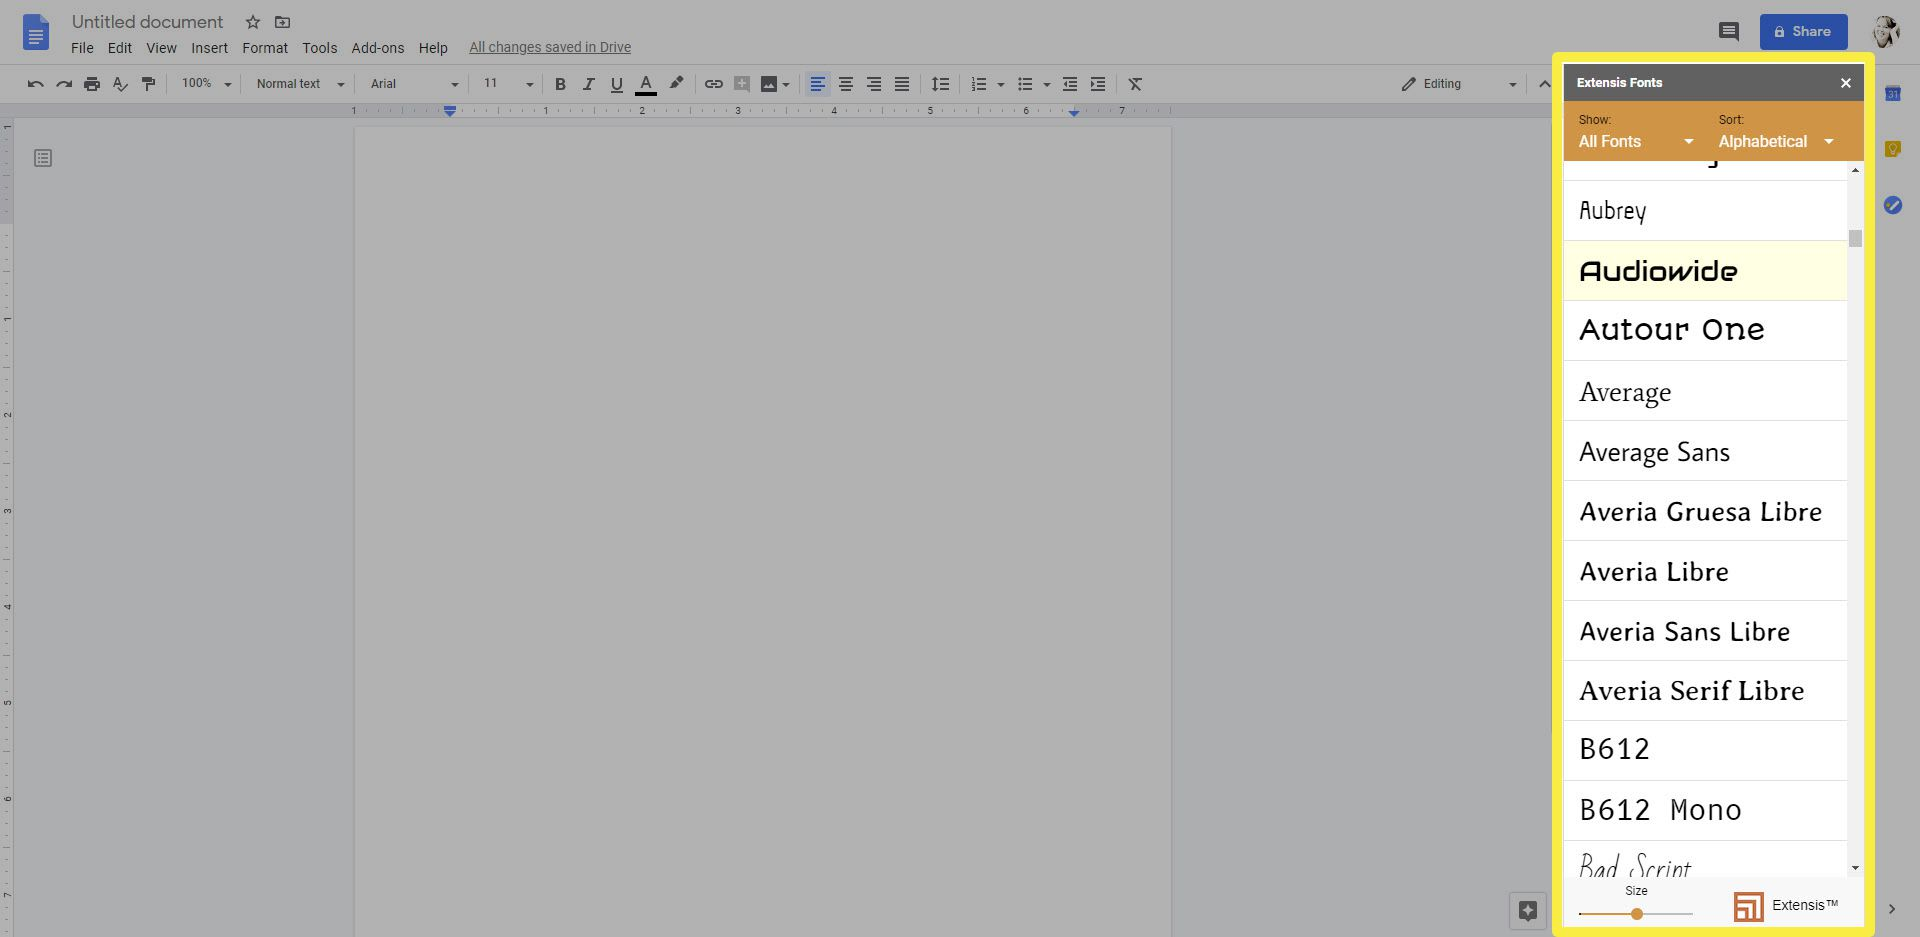 A screenshot showing the Extensis Fonts add-on on the right side of Google Docs.